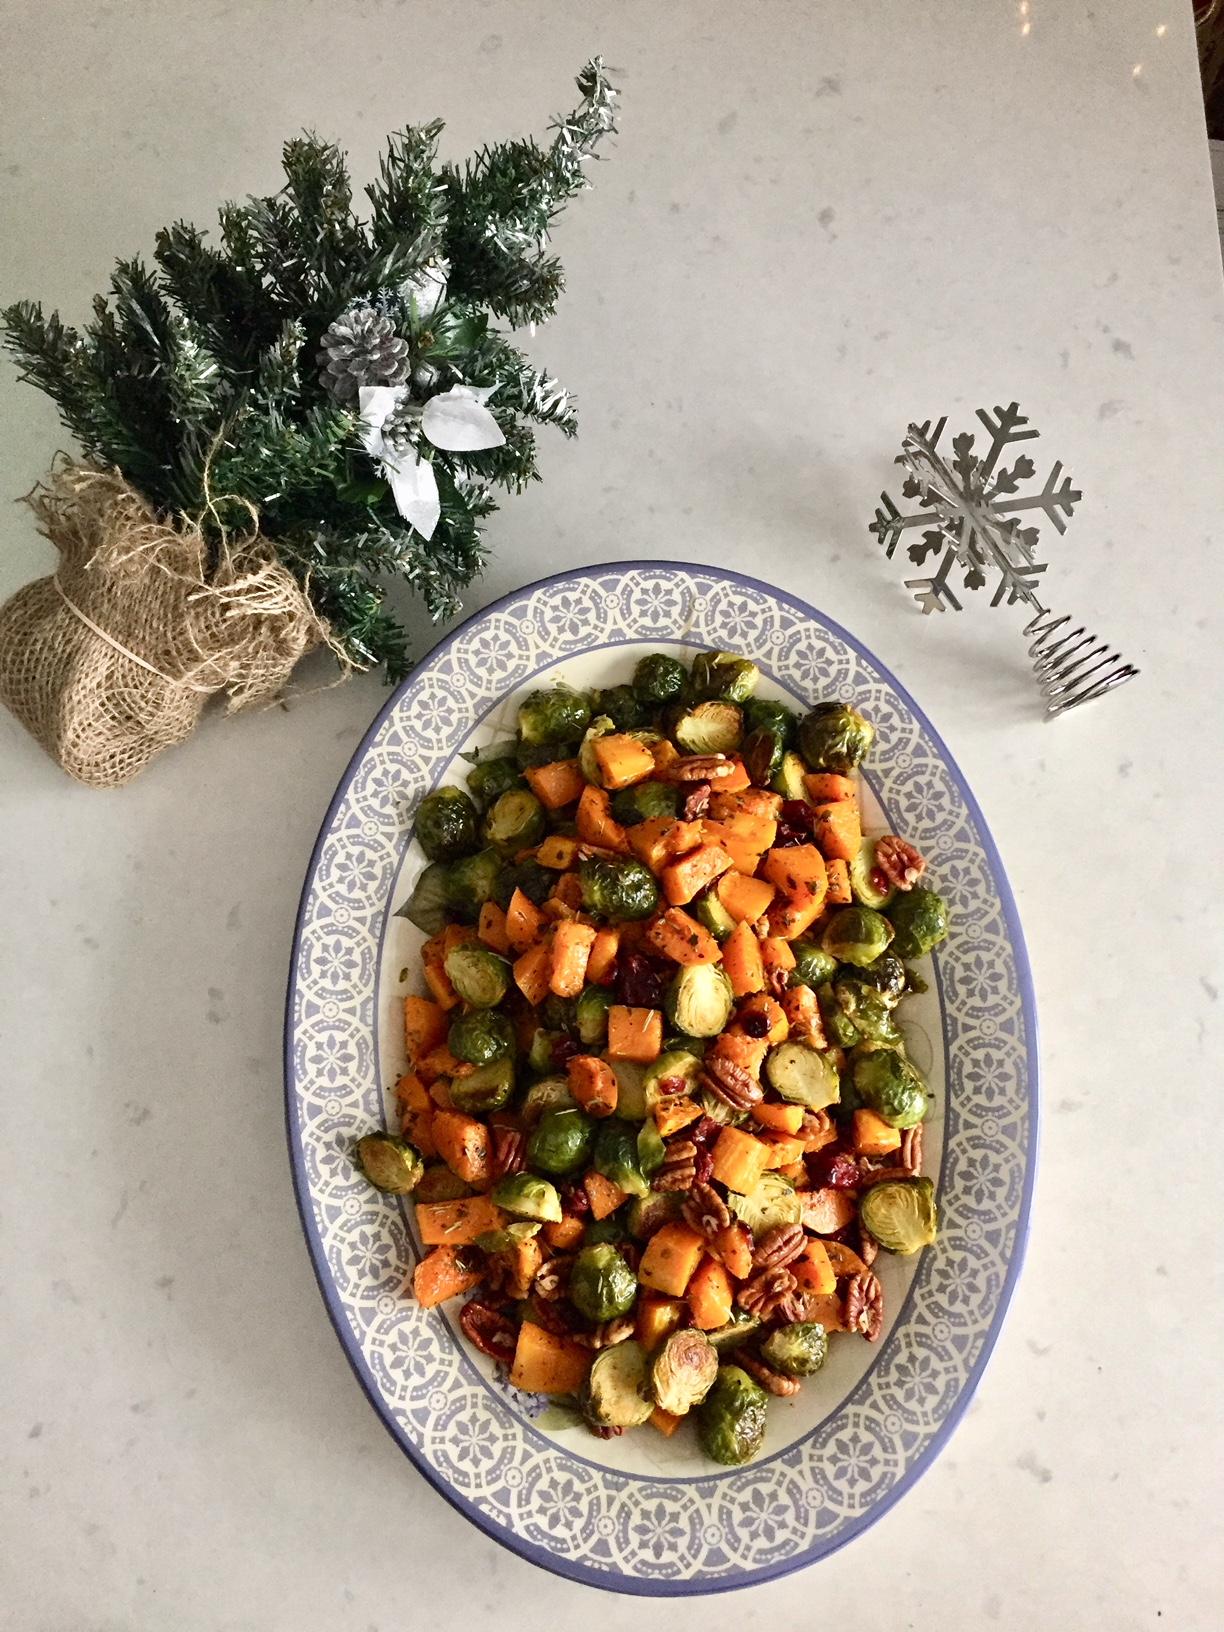 Roasted Brussels Sprouts & Butternut Squash with Cranberries & Toasted Pecans